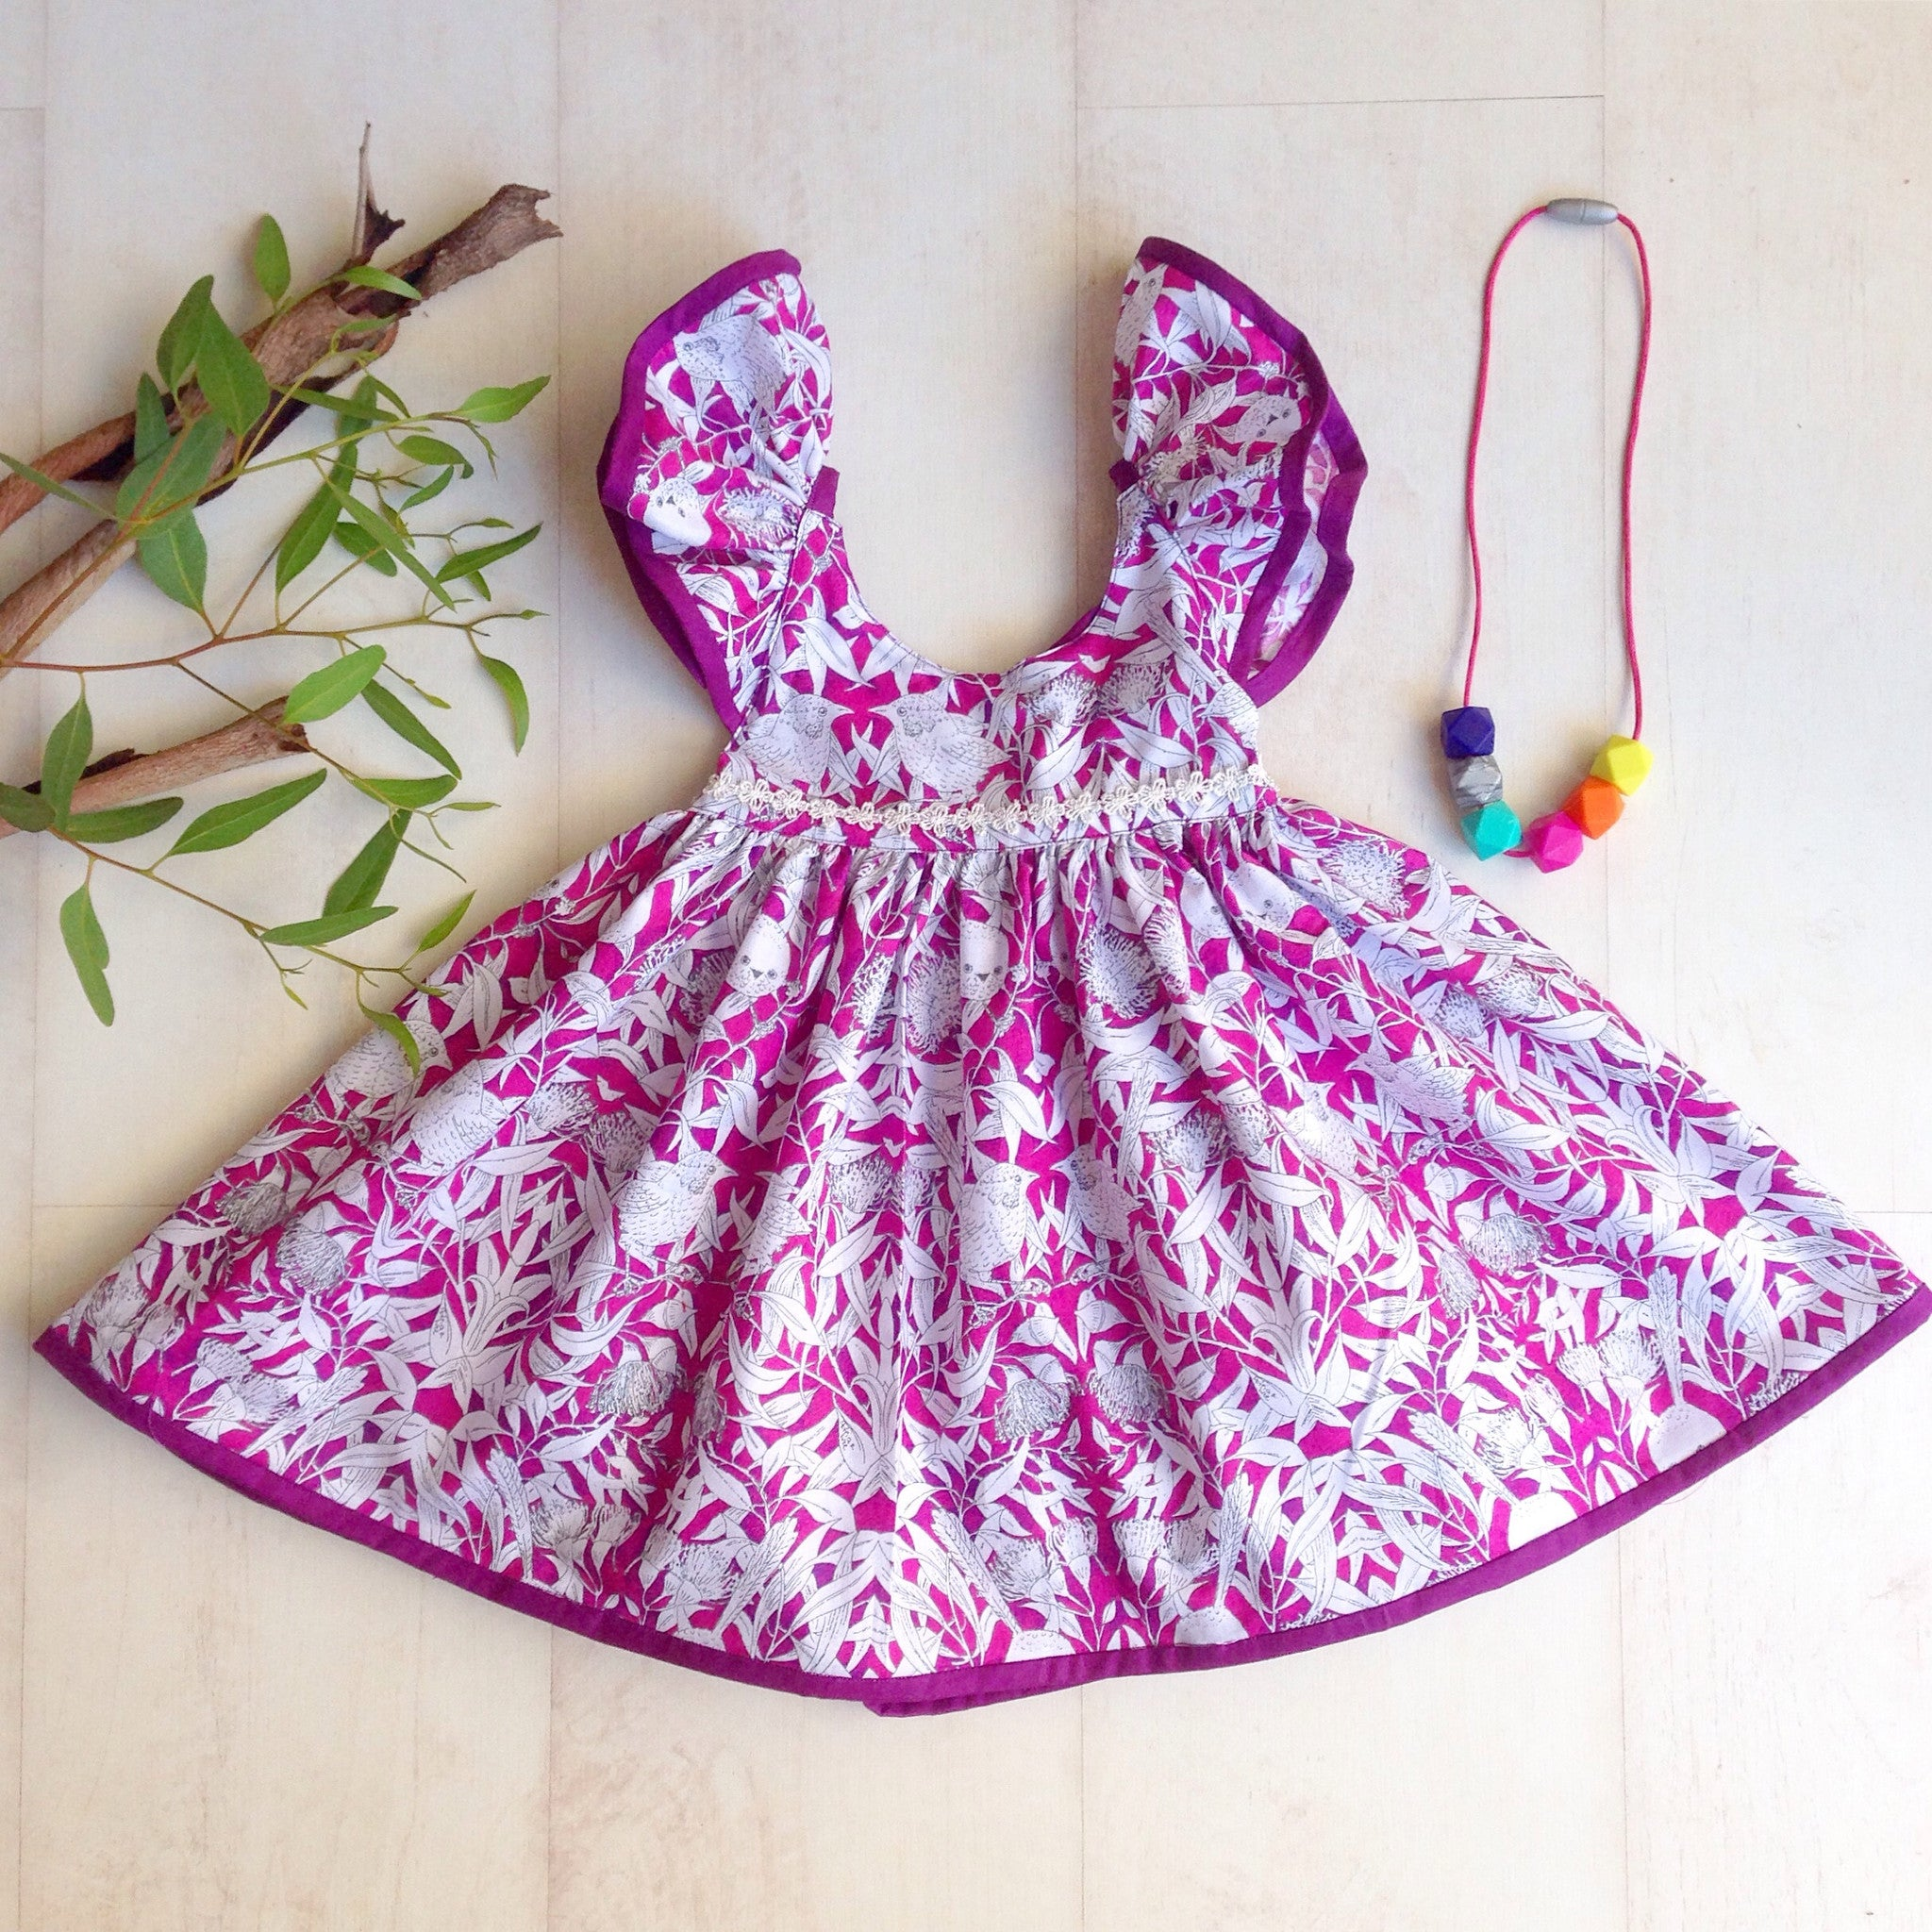 Wren and Eucalyptus Dress